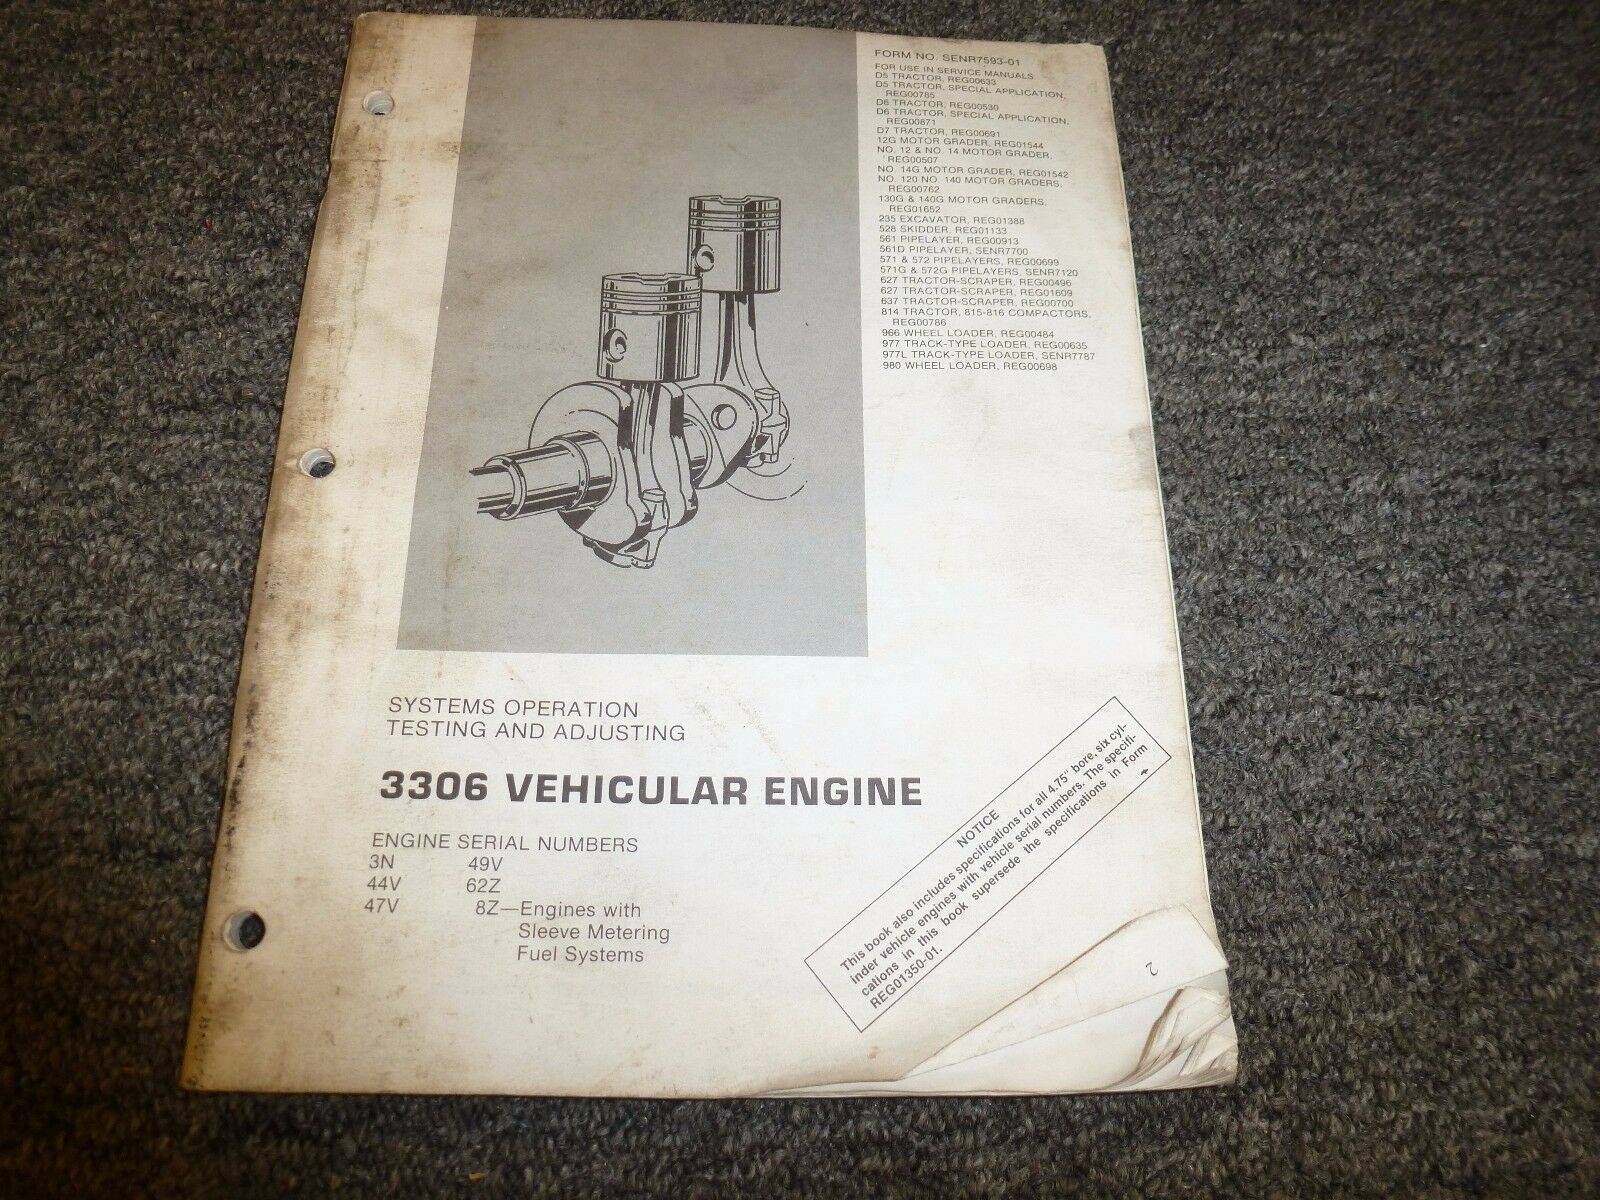 Caterpillar Cat 3306 Vehicular Engine Systems Operation Testing Diagram Norton Secured Powered By Verisign